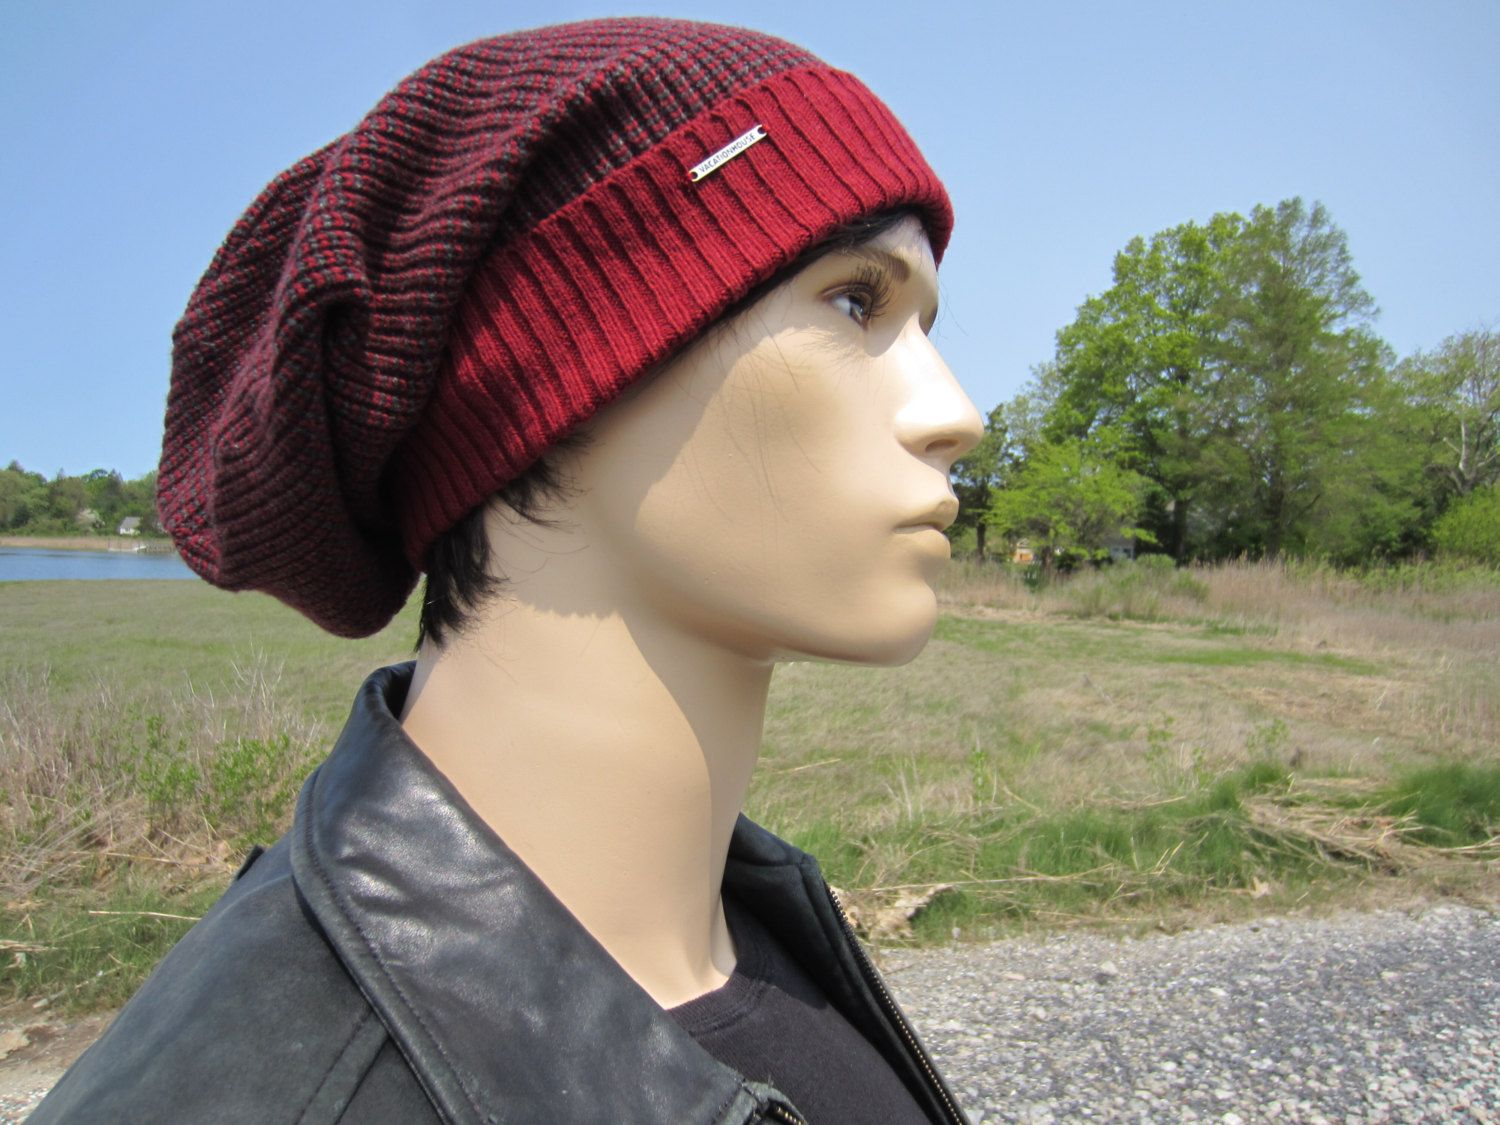 Oversized Tam Thick Knit Hats Slouchy Beanie Stocking Cap Red Gray Men s  Cotton Baggy Long Hats 04acd53718a